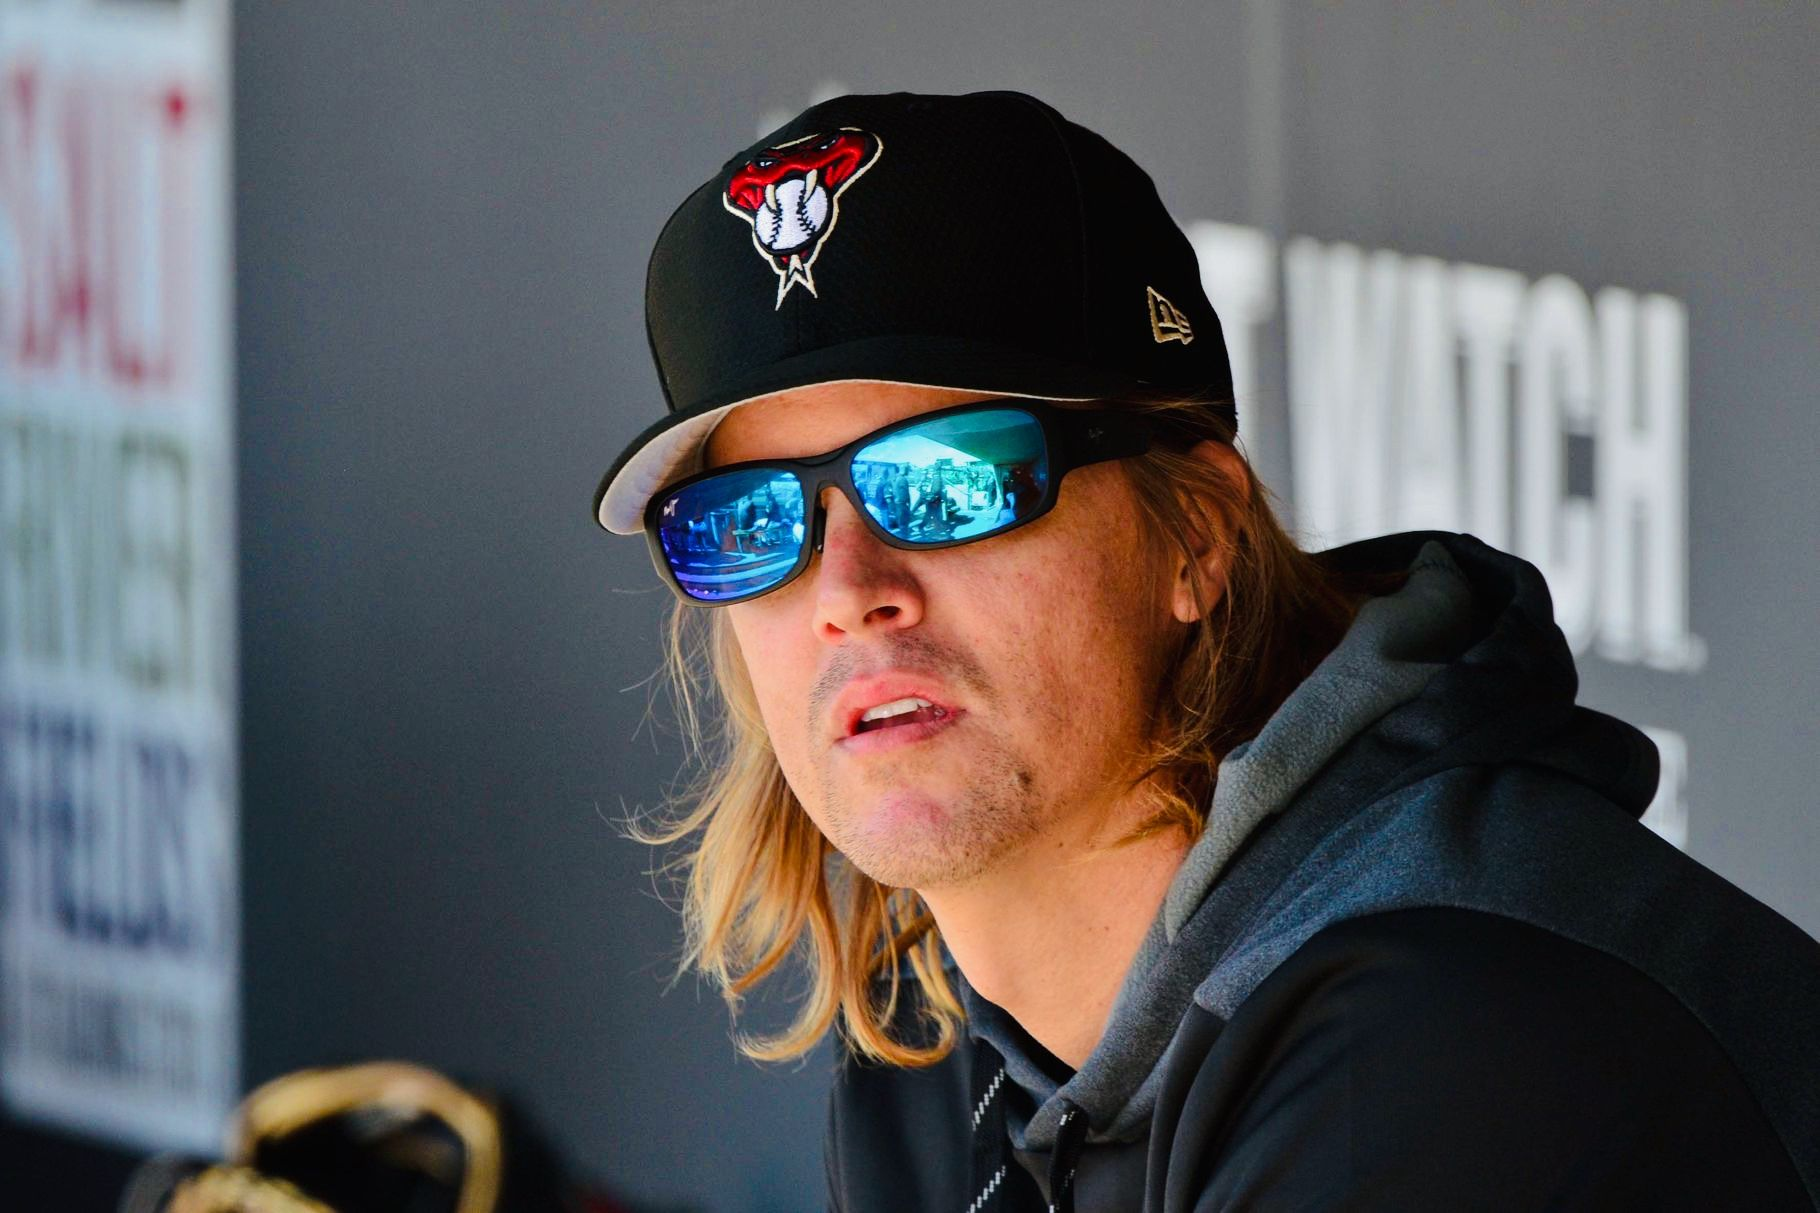 Pin By April Addington On Zack Greinke My Mlb Crush With Images Mirrored Sunglasses Mens Sunglasses Mirrored Sunglasses Men